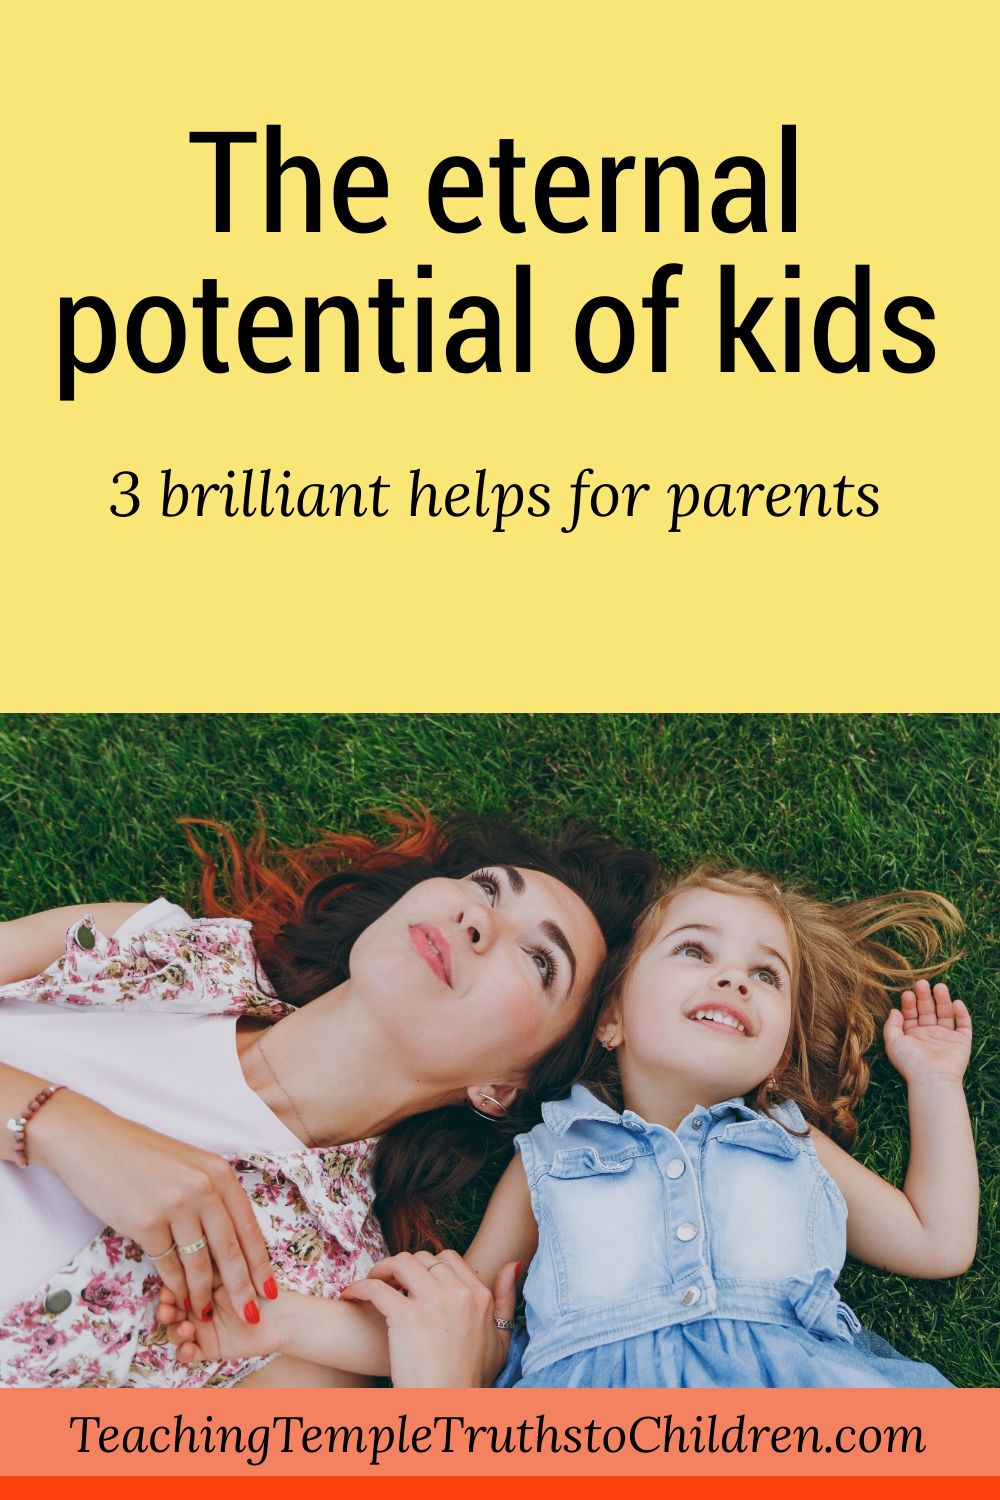 The eternal potential of kids: 3 brilliant helps for parents